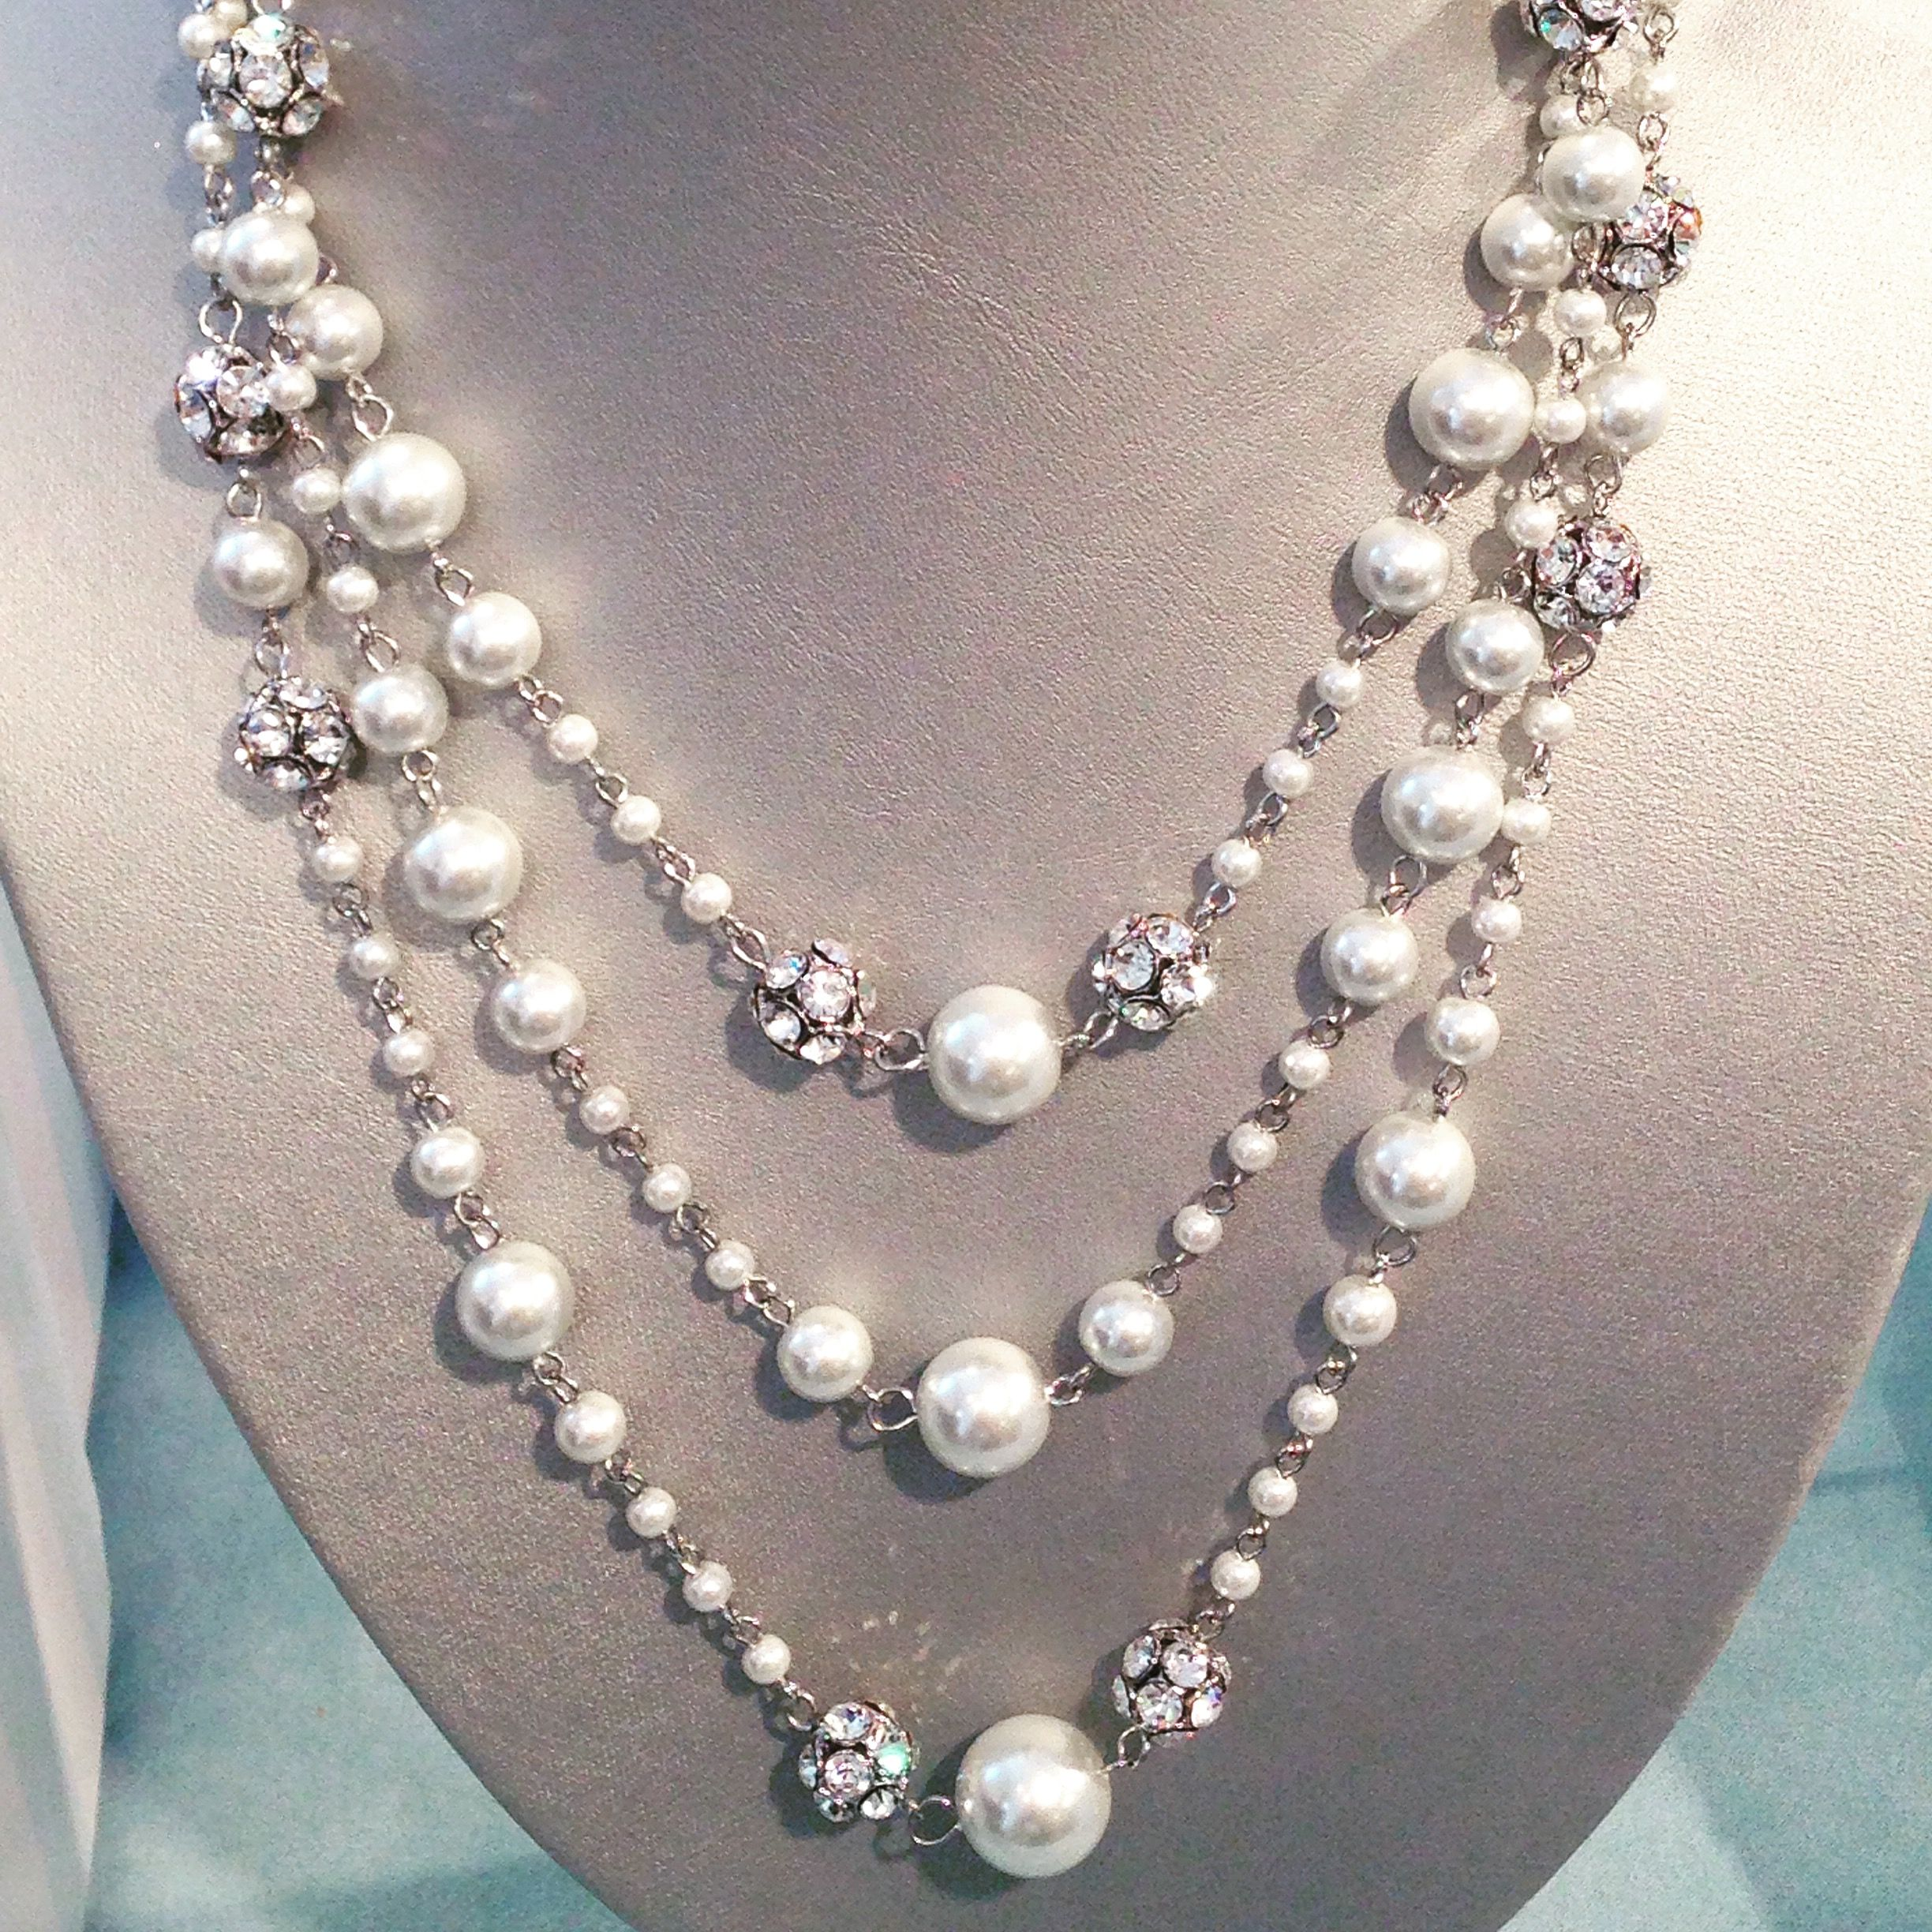 Gina necklace station necklace crystal ball and layering